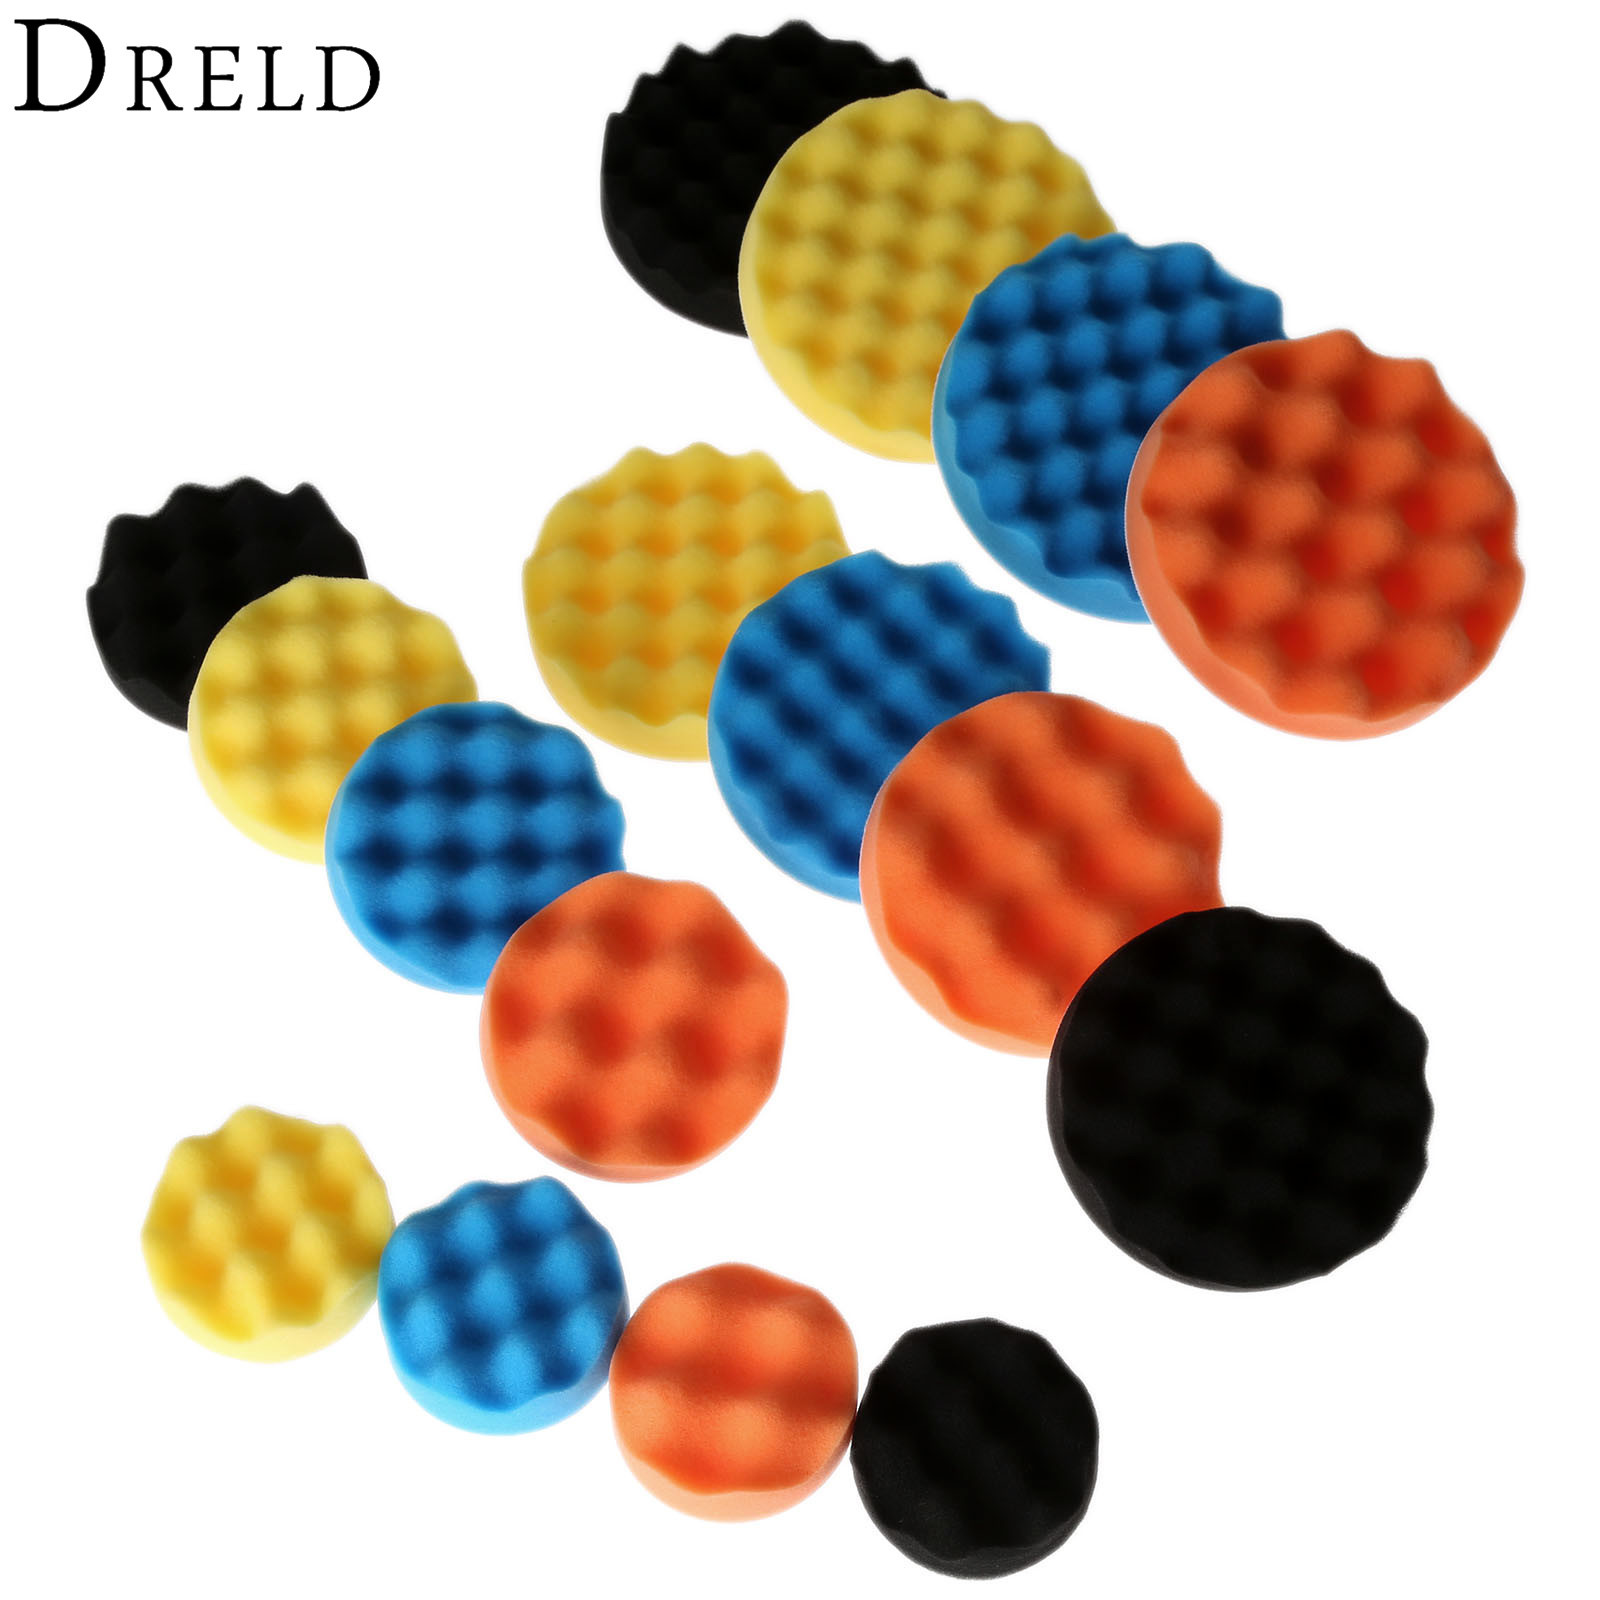 DRELD 4pcs 3/4/5/6 Inch Sponge Buffing Polishing Pad Hand Tool Kit For Car Polisher Buffer Wax Cleaning Tool 80/100/125/150MM